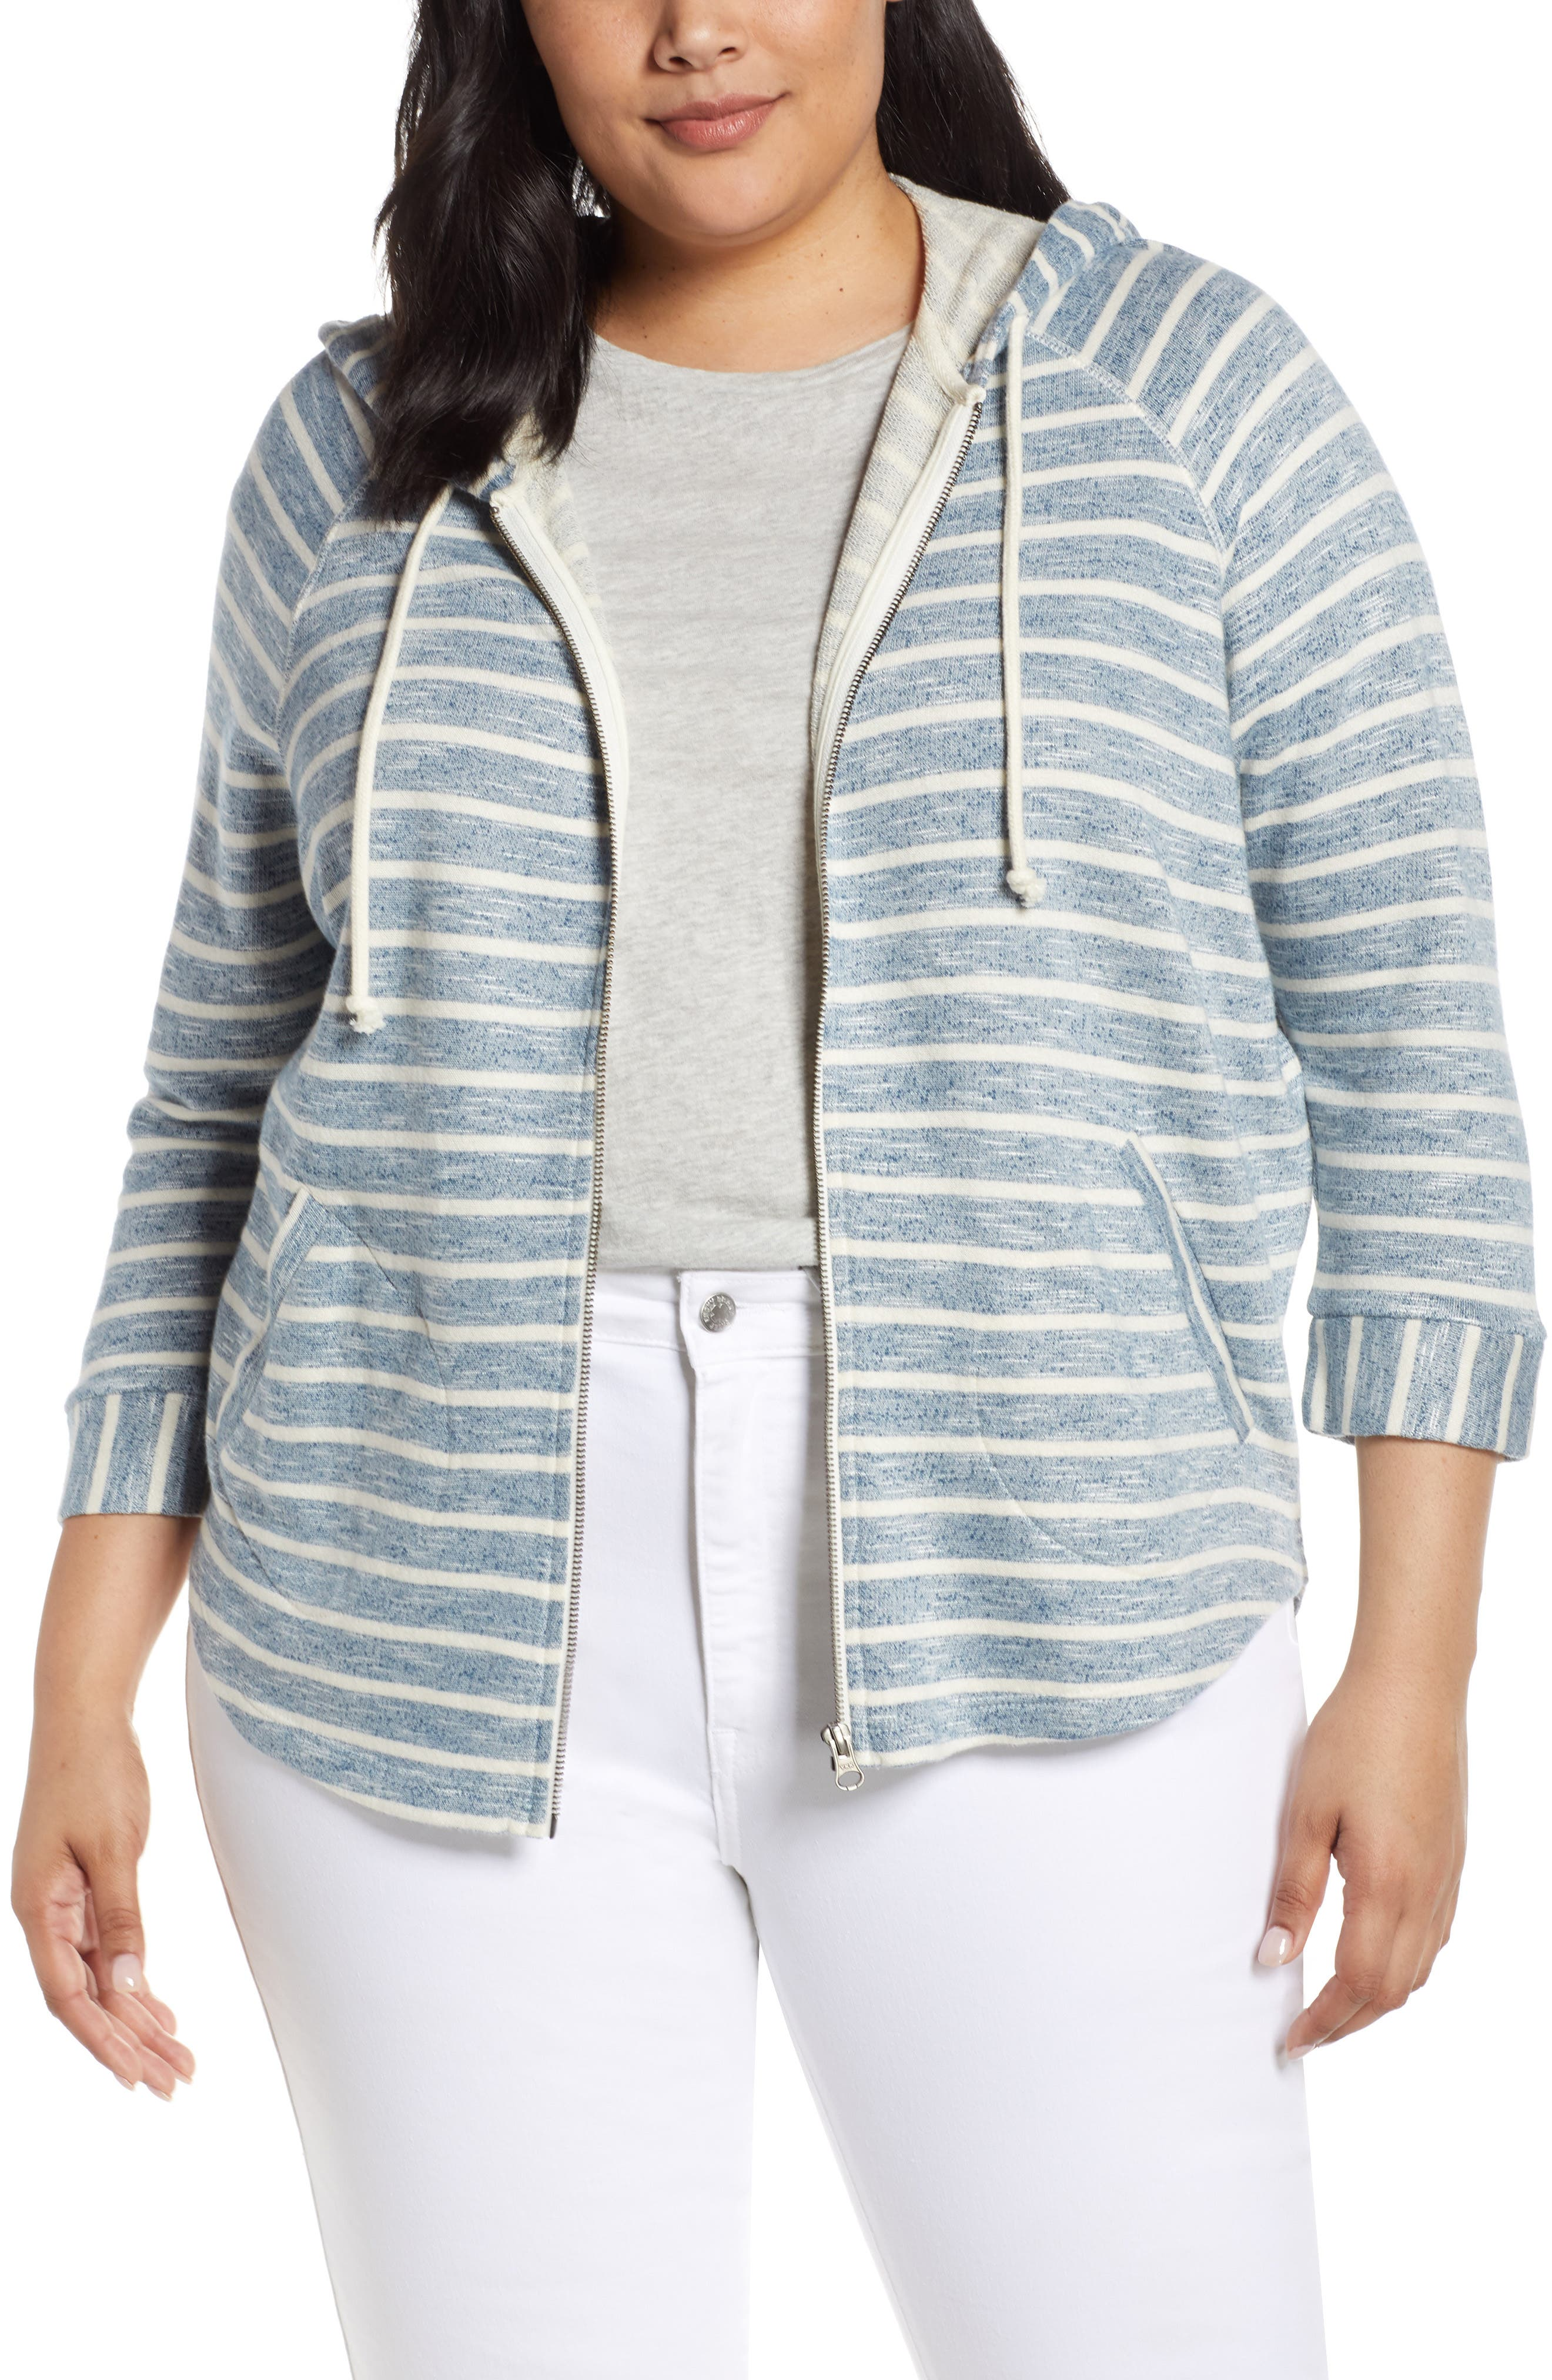 aede31e5cf3f Buy lucky brand sweaters for women - Best women's lucky brand sweaters shop  - Cools.com